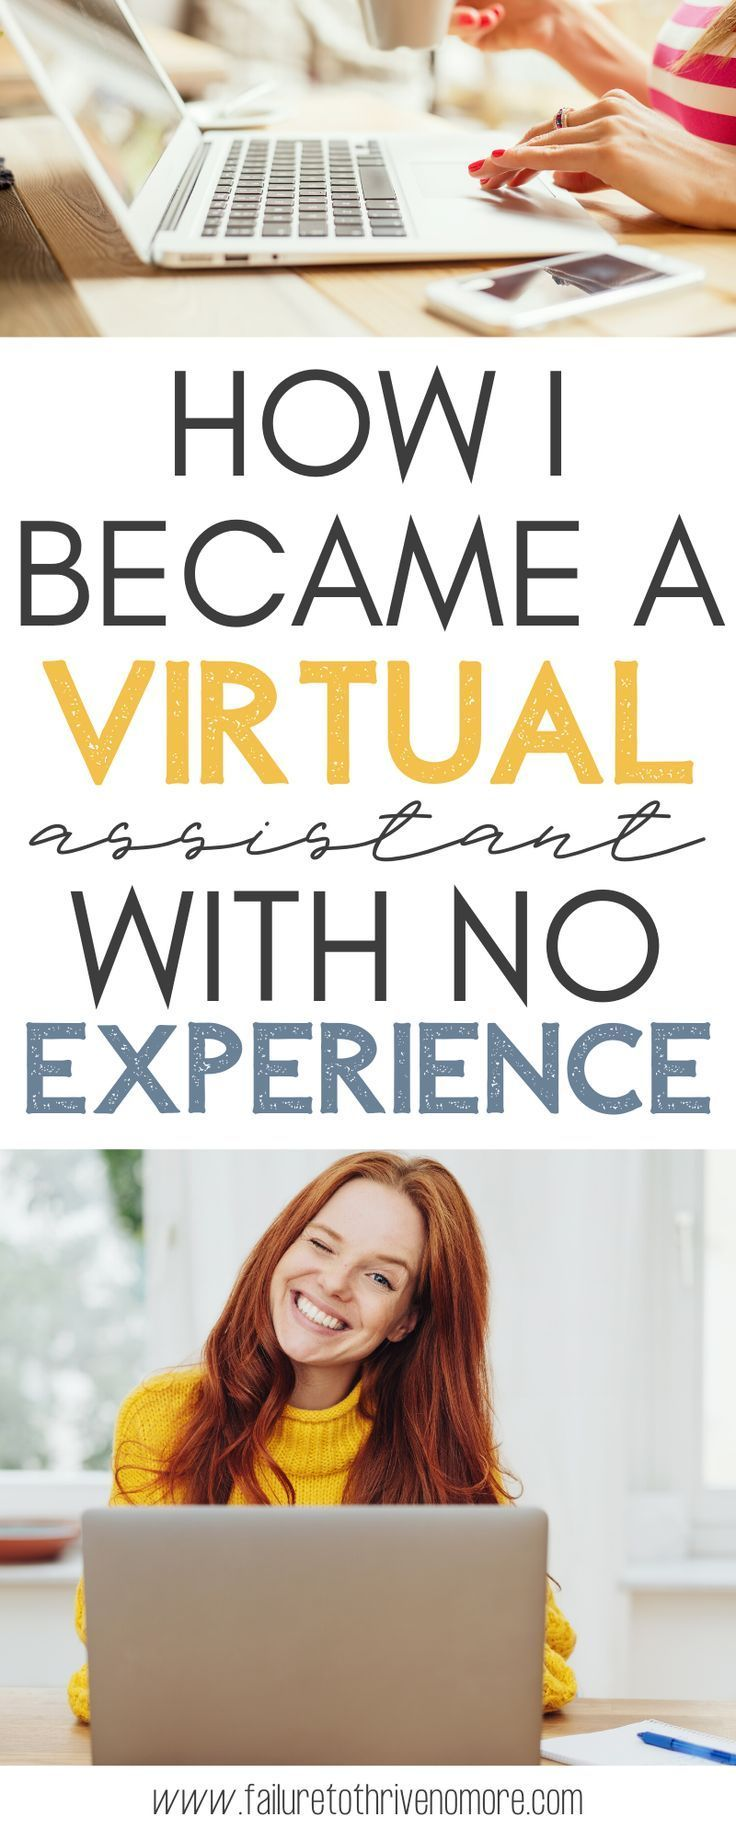 How to a Virtual Assistant with No Experience in